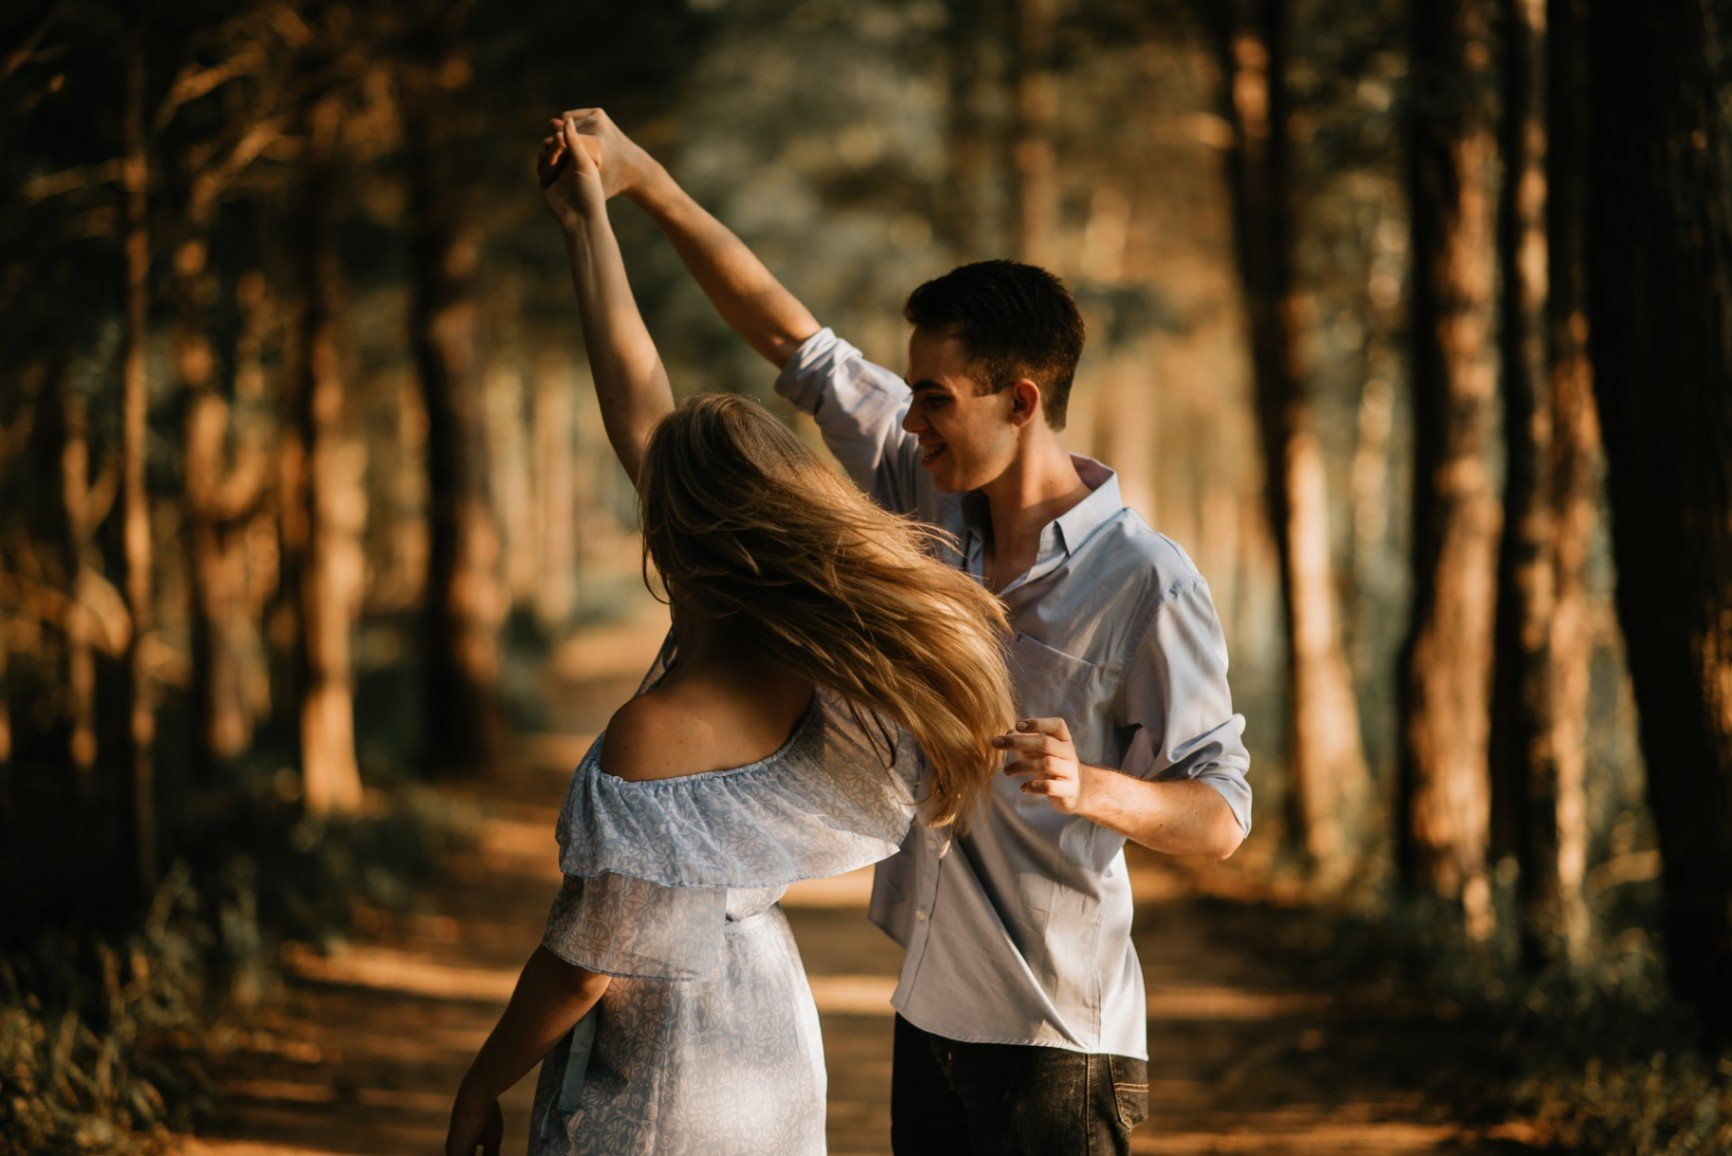 Is Dancing a Sport? Learn About the Different Types of Dance